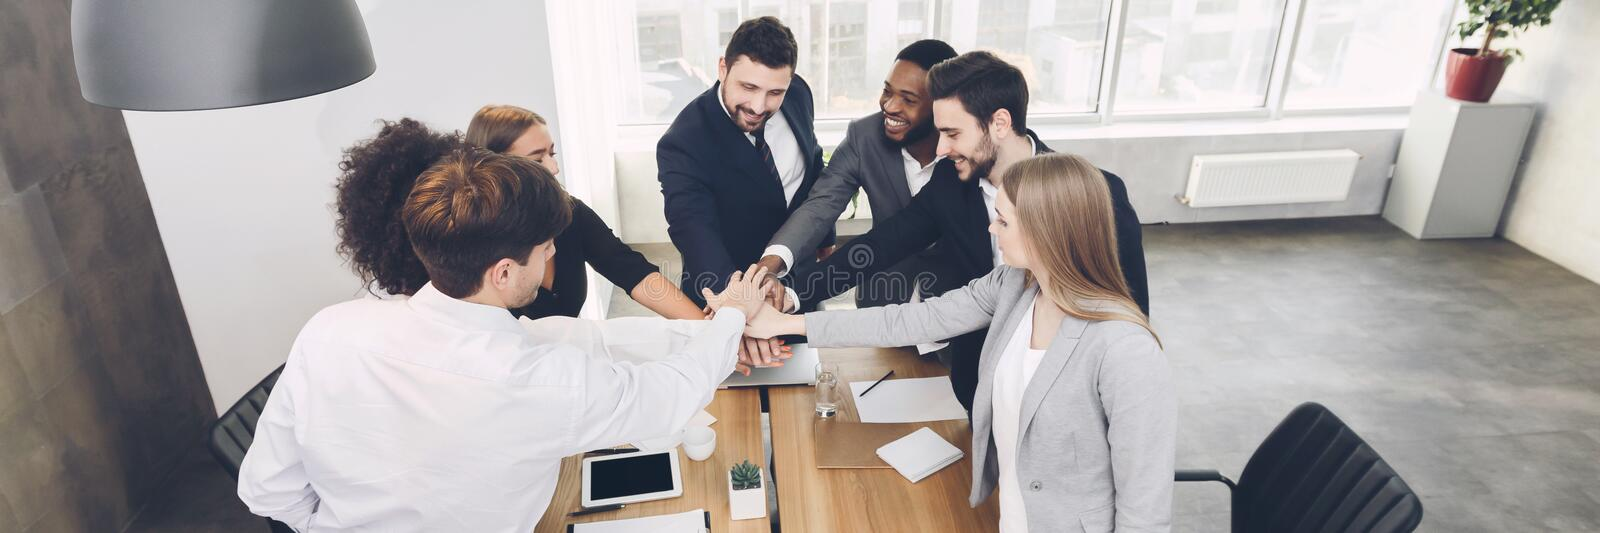 Young team joining hands involved in teambuilding activity stock photo